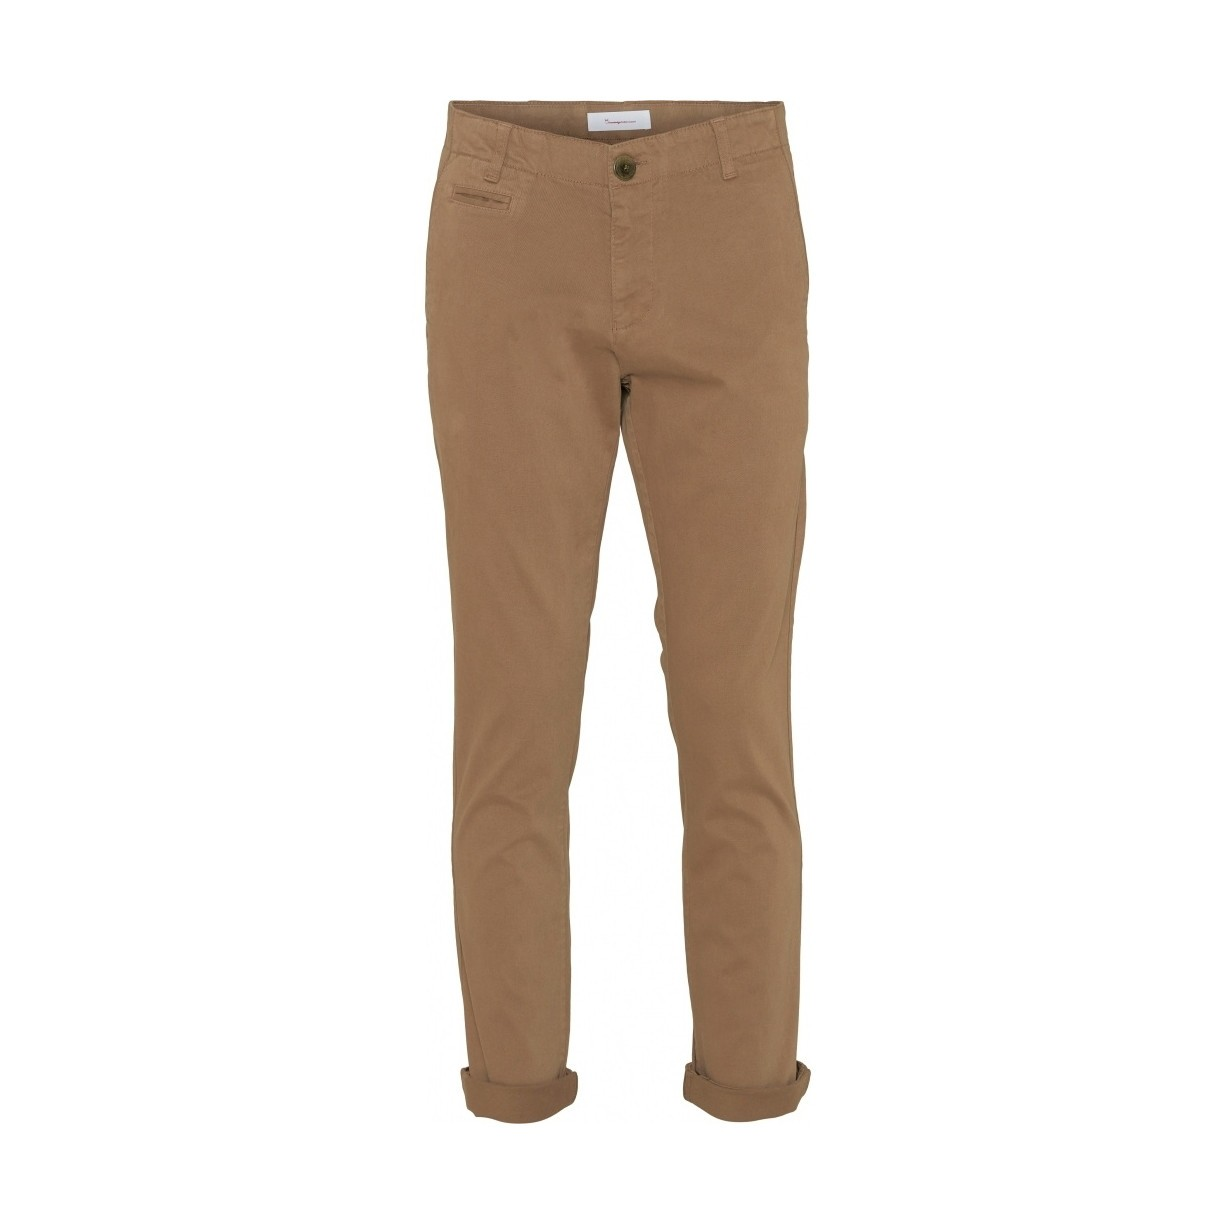 CHUCK regular stretched chino pant Tuffet